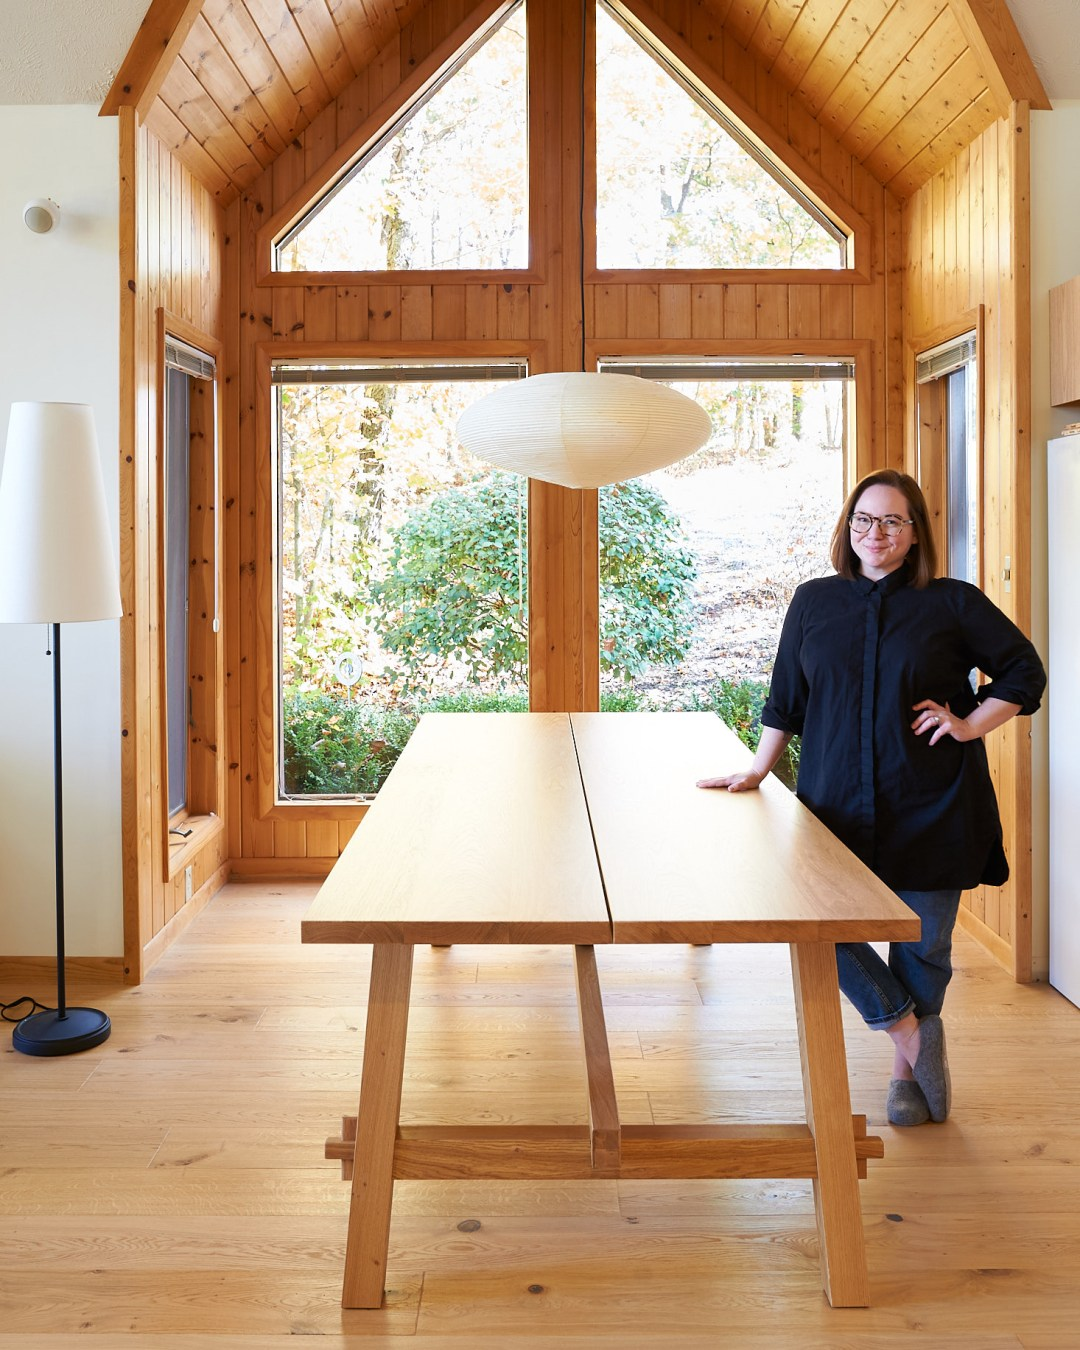 The Cabin Dining Nook Update: An IKEA Table And A Noguchi Akari